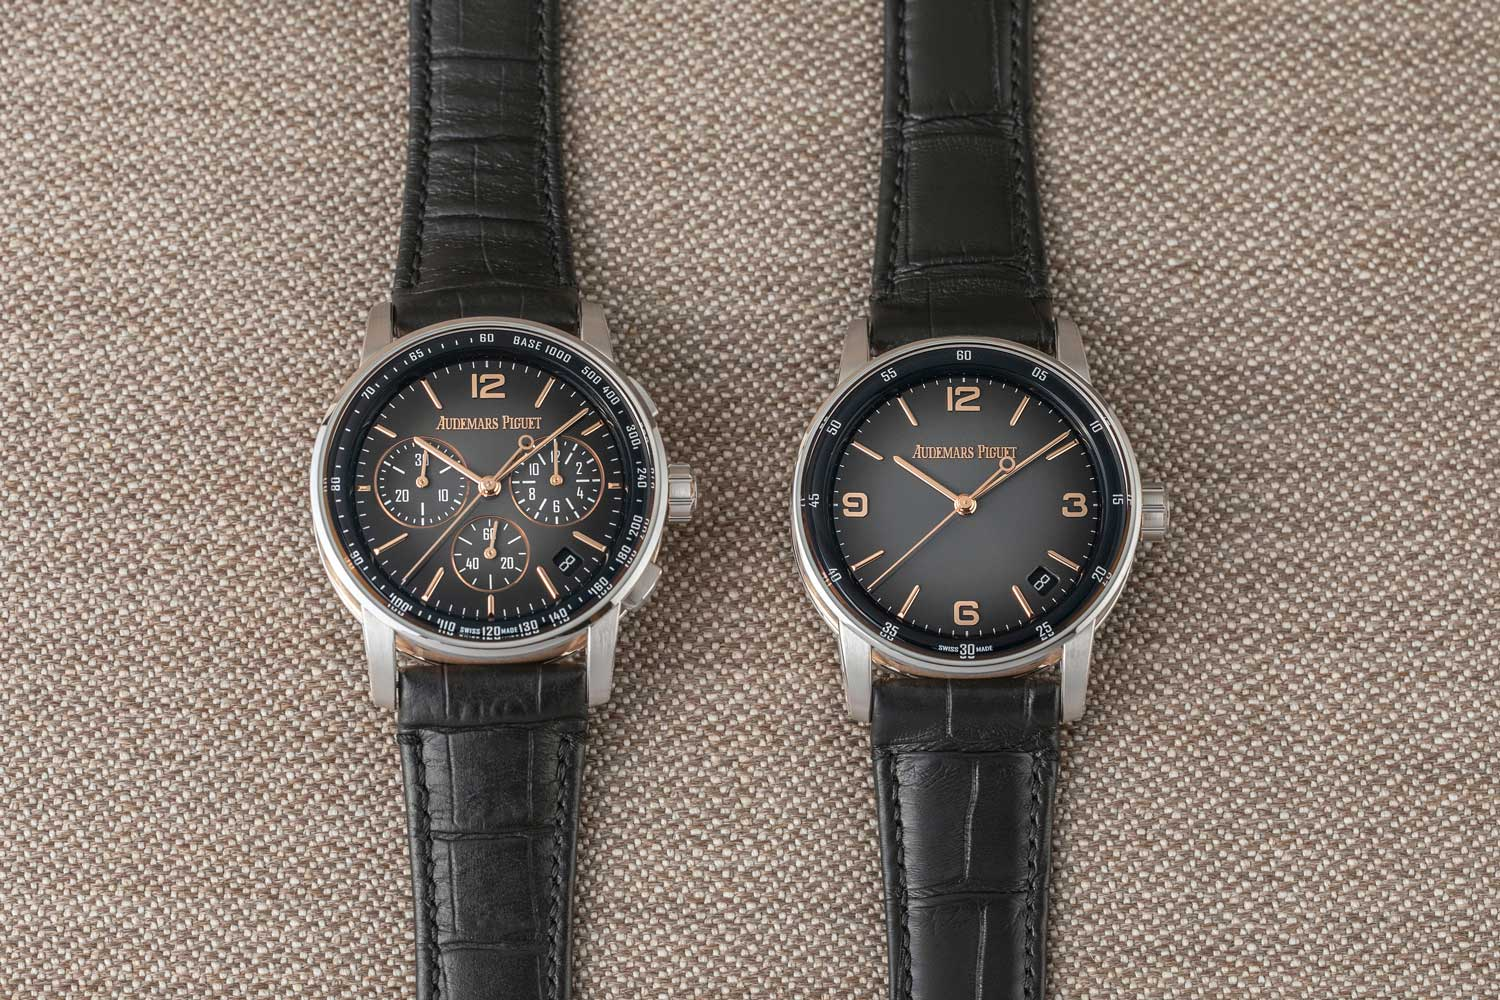 The 2020 of Code 11.59 by Audemars Piguet timepieces feature arresting and visually dynamic dials such as this pair in a smoked grey lacquered dial with sunburst pattern on the ref. 26393CR.OO.A002CR.01 selfwinding chronograph and the ref. 15210CR.OO.A002CR.01 time-only ©Revolution)